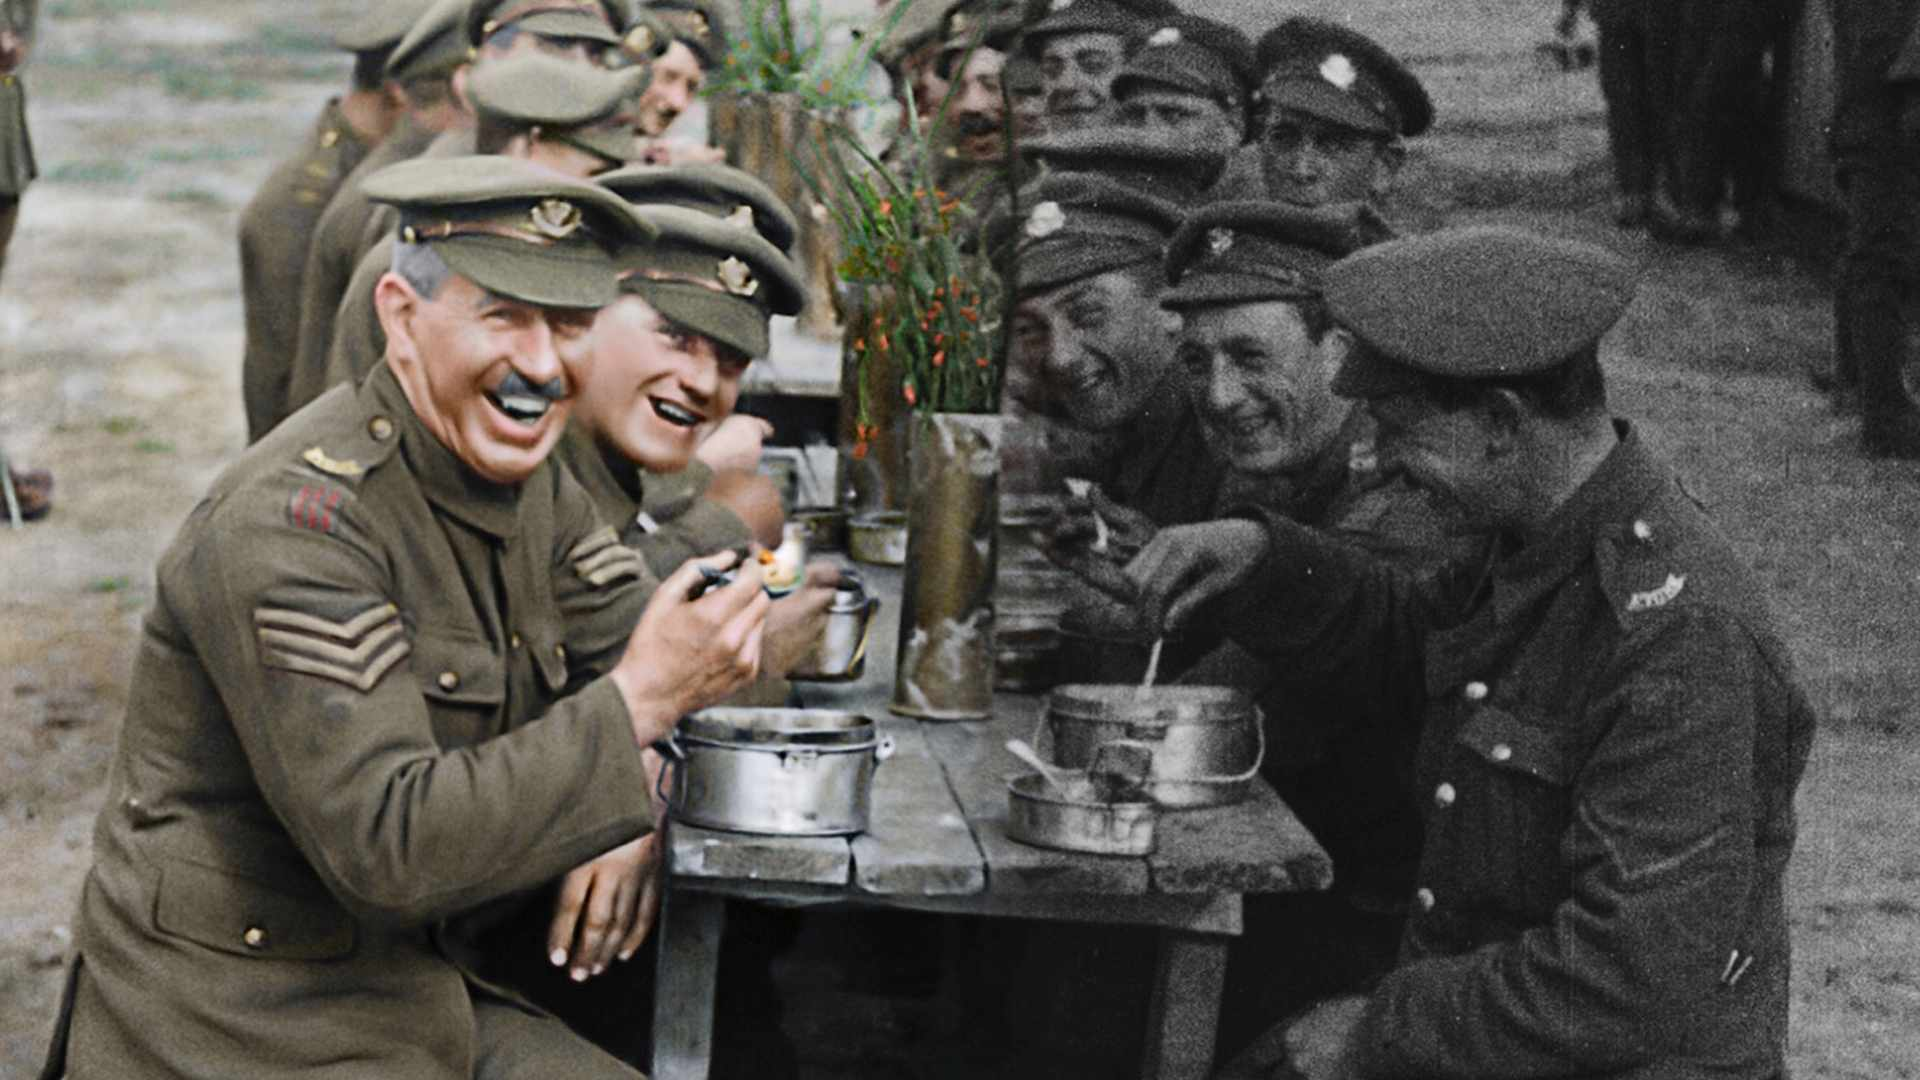 A scene from 'They Shall Not Grow Old', showing how film director Peter Jackson digitally remastered footage of the First World War. (Photo courtesy of THEY SHALL NOT GROW OLD/ WingNut Films/ Peter Jackson. Original black and white film © IWM)